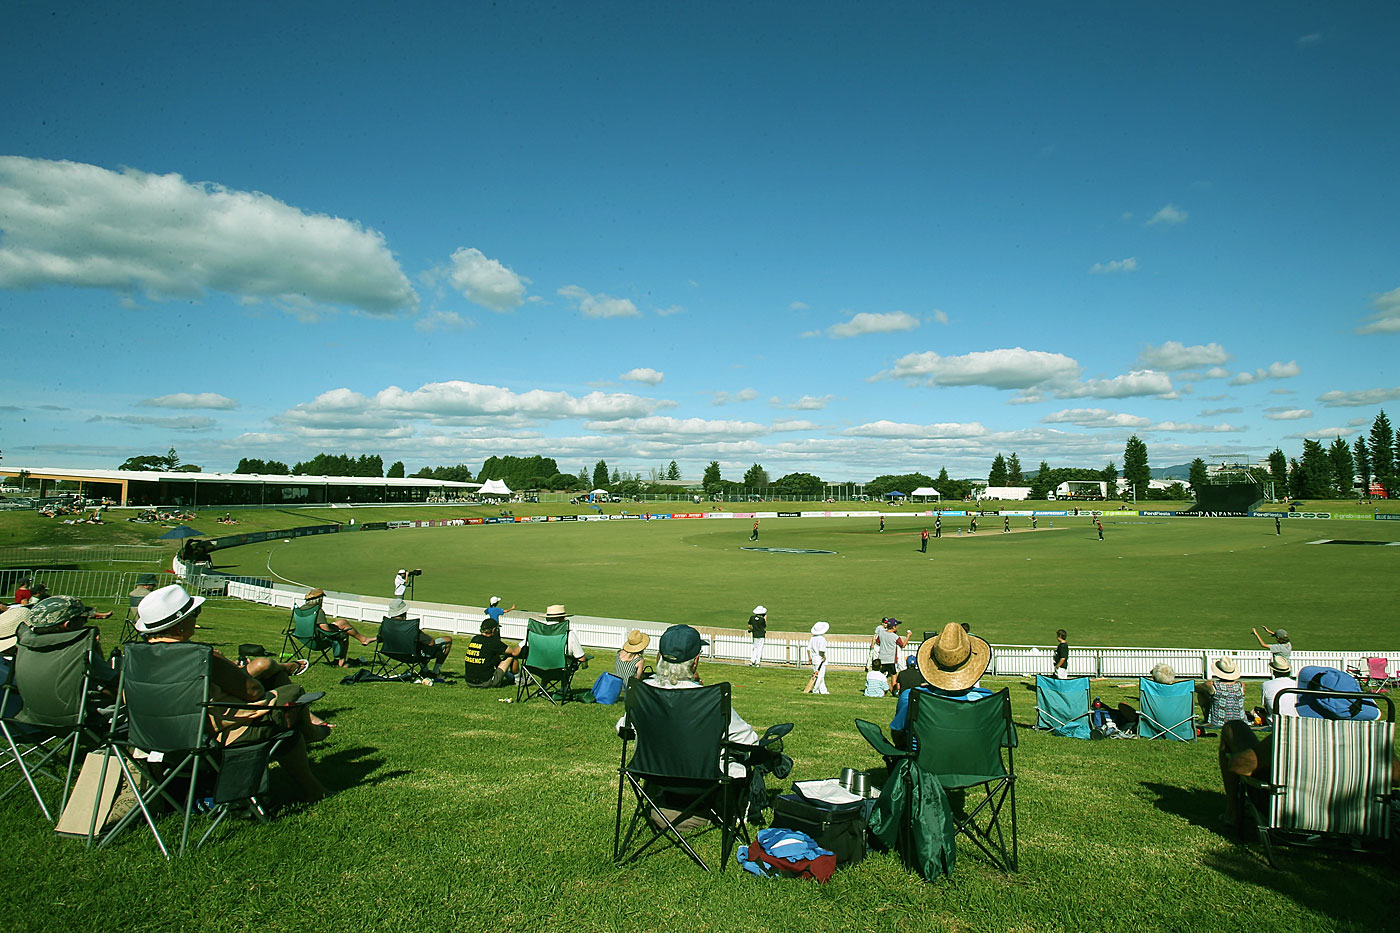 Mount Maunganui: this beautiful beachside town, also an international venue, is now Williamson's home